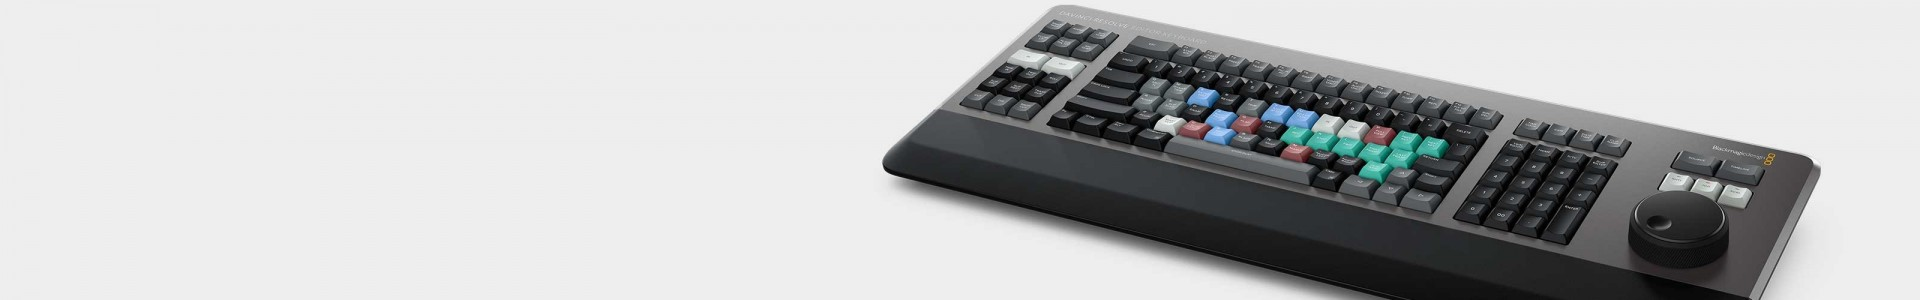 Dedicated keyboards, color correction panels and much more - Avacab